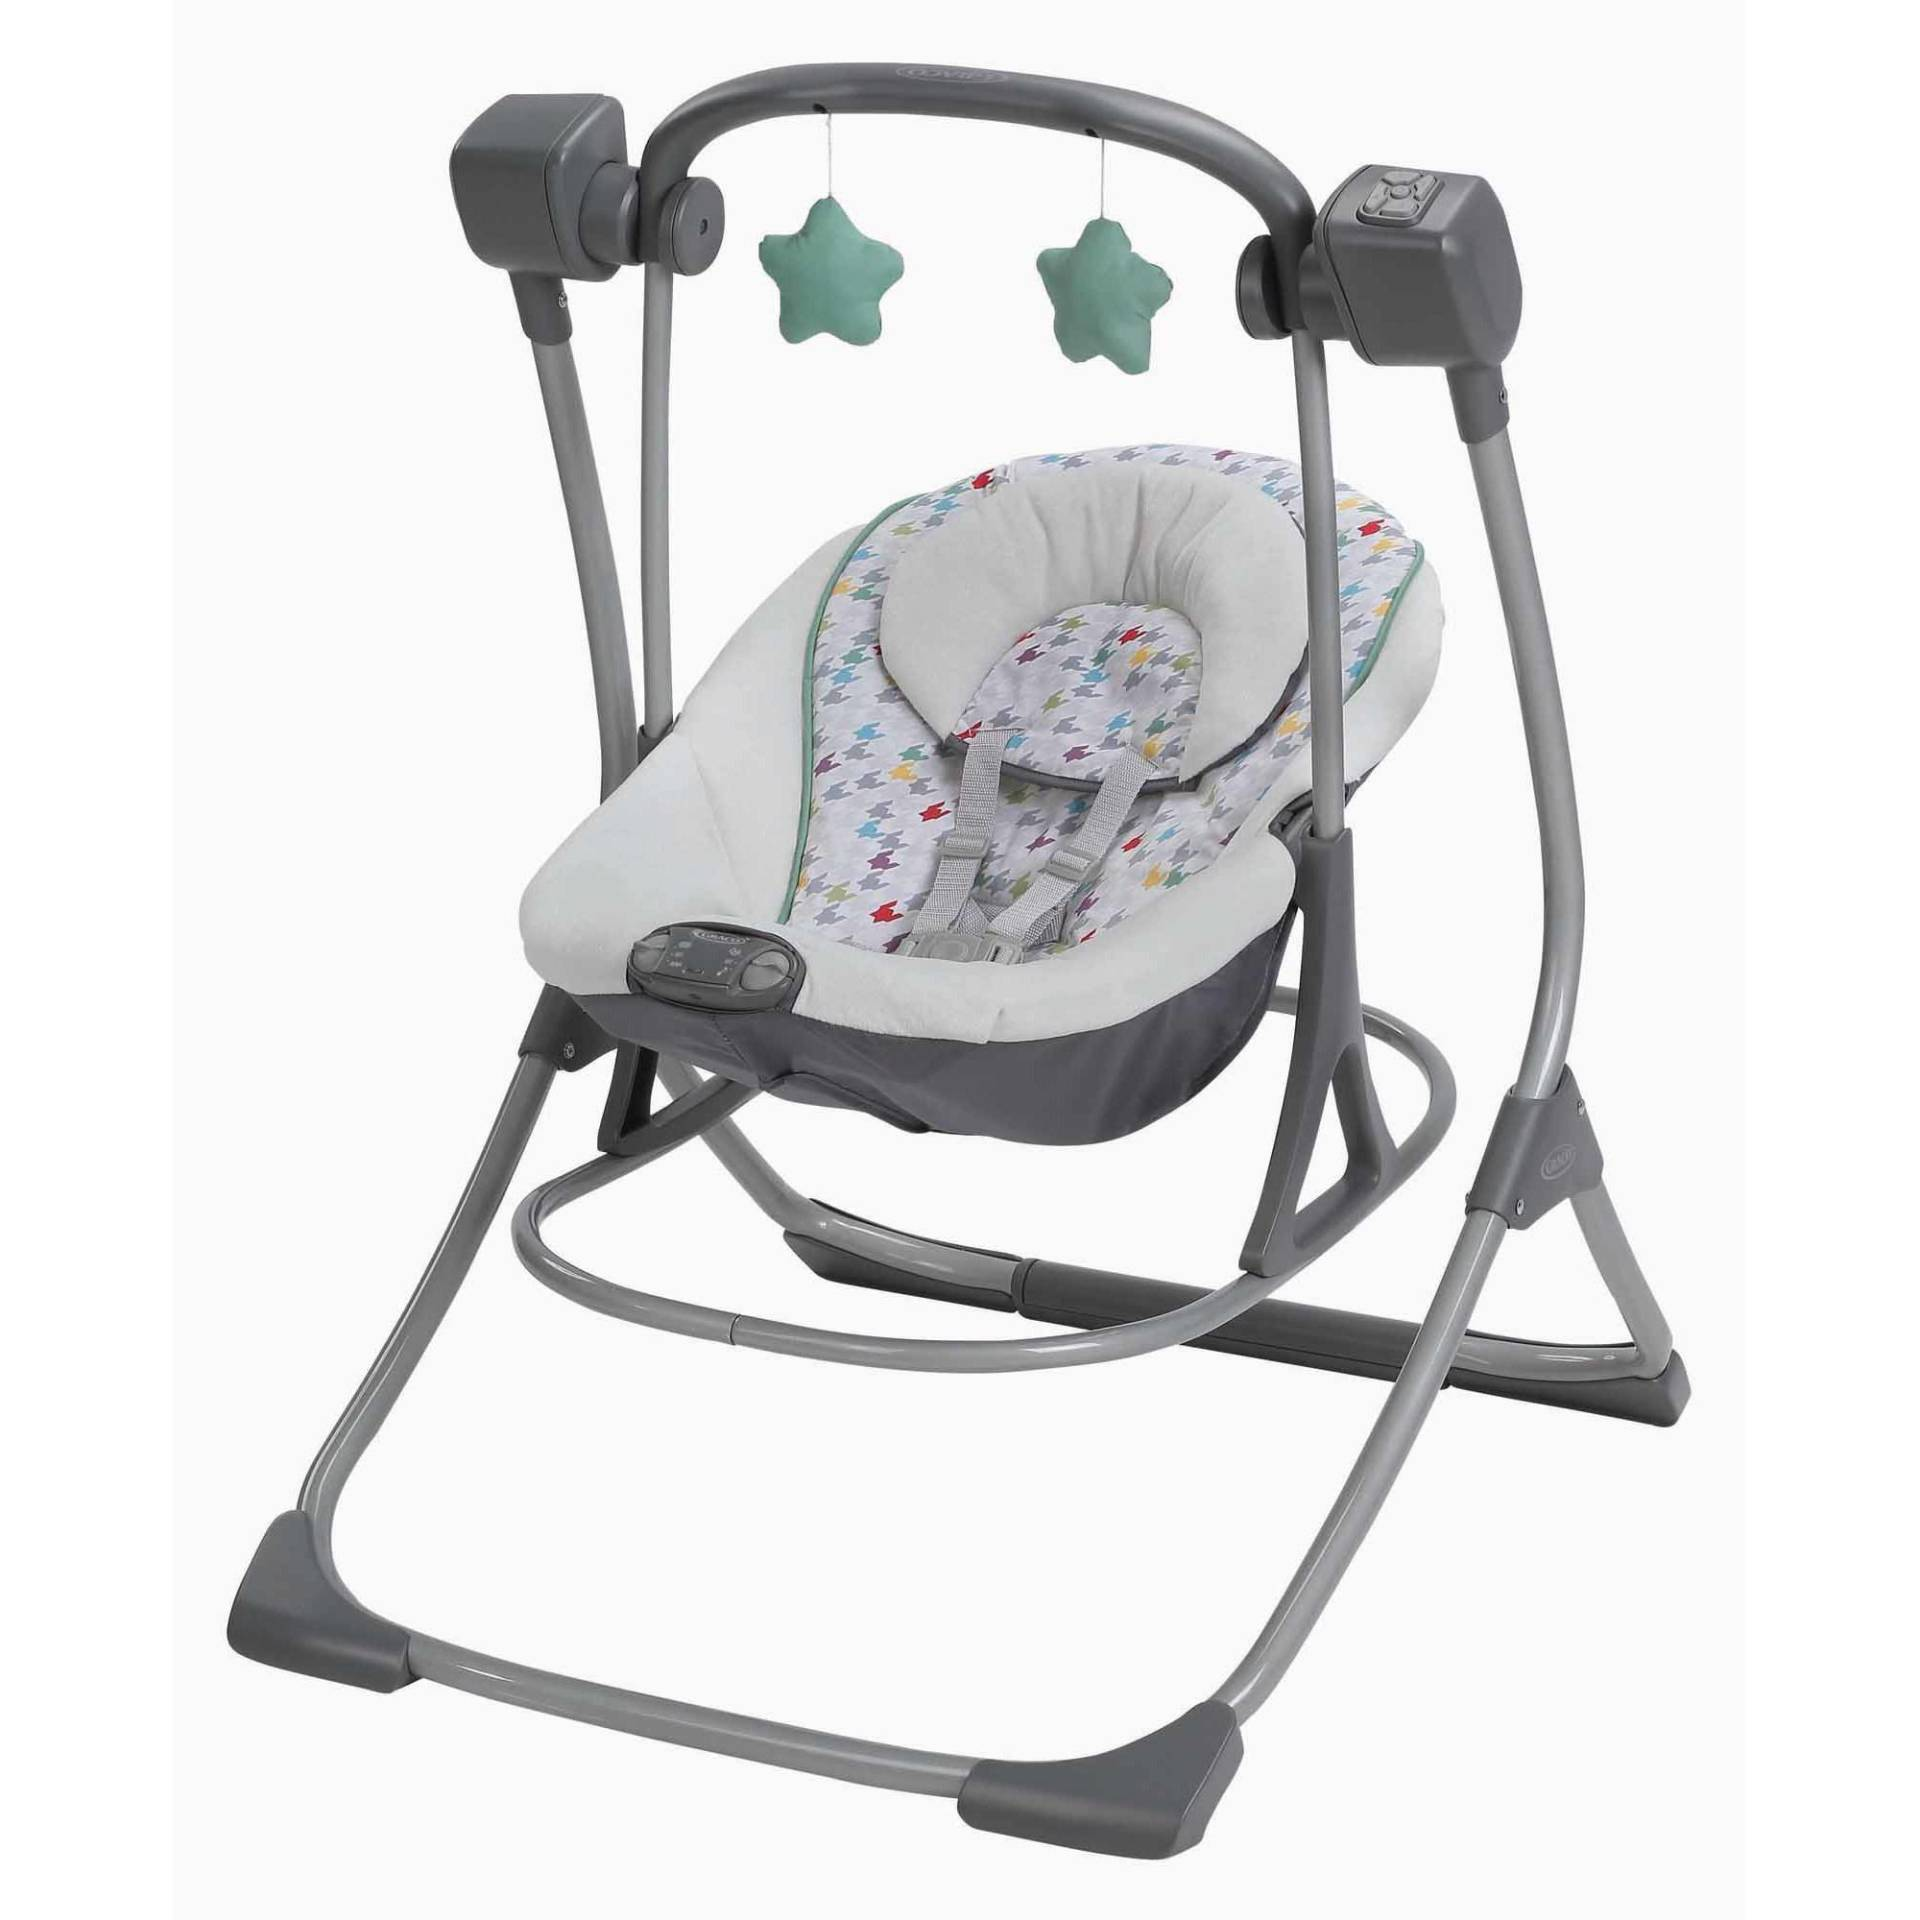 Choose Top Rated Baby Swings: The Fisher-Price Snugabunny Cradle 'N Swing